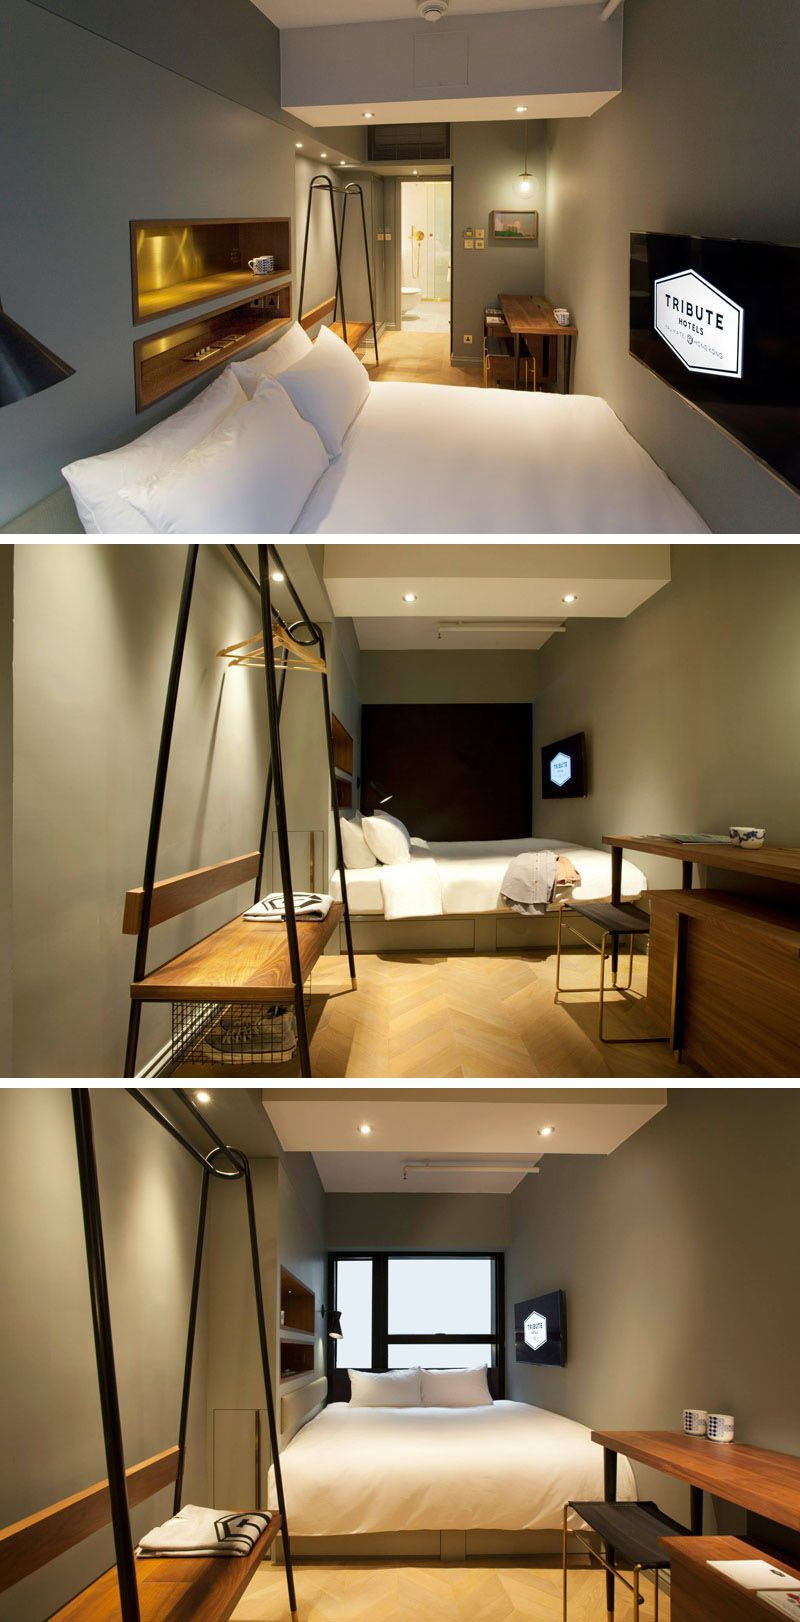 8 Small Hotel Rooms That Maximize Their Tiny Space Tiny Spaces Storage Area And Coat Hanger